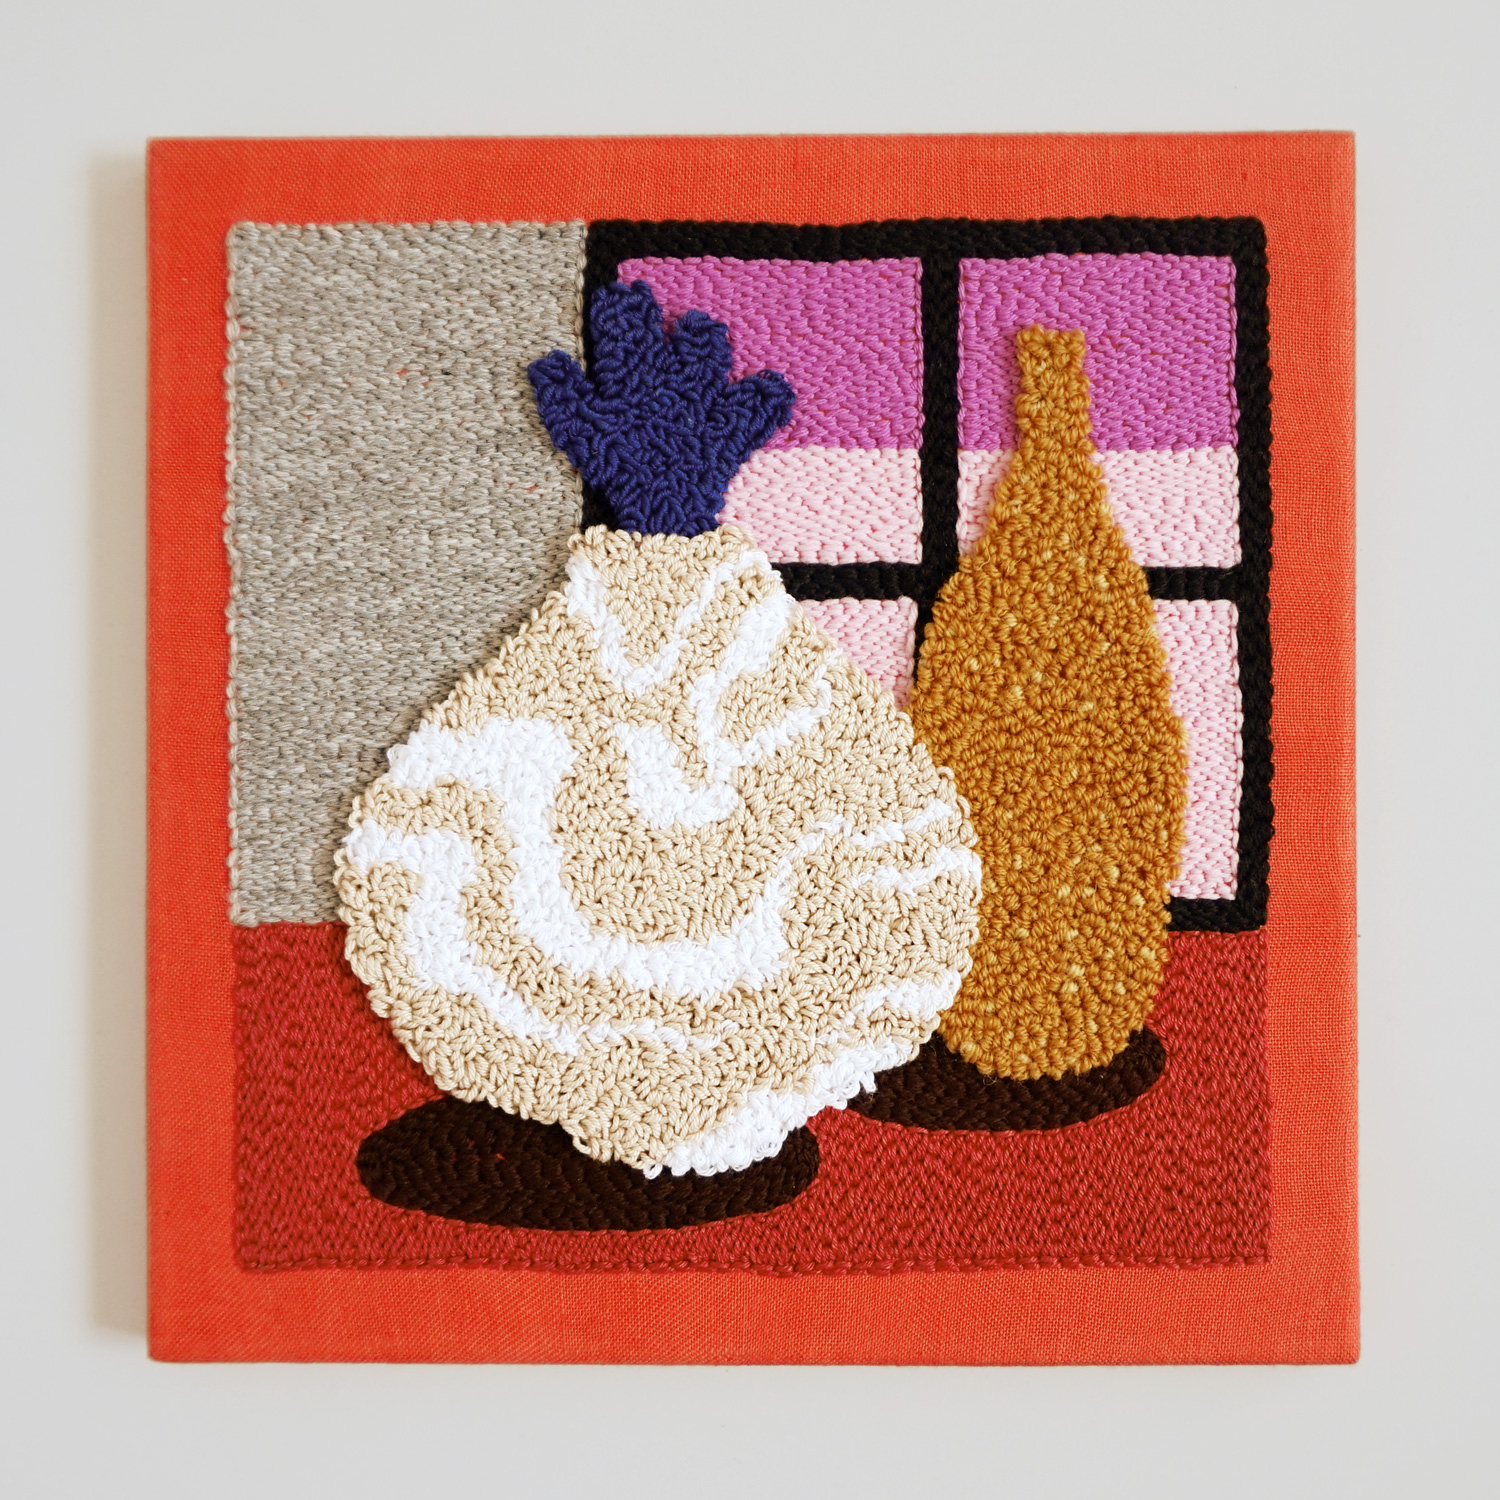 A soft punch needle mini artwork, featuring a marbled and speckled vase in front of a dusky pink sunrise window view.